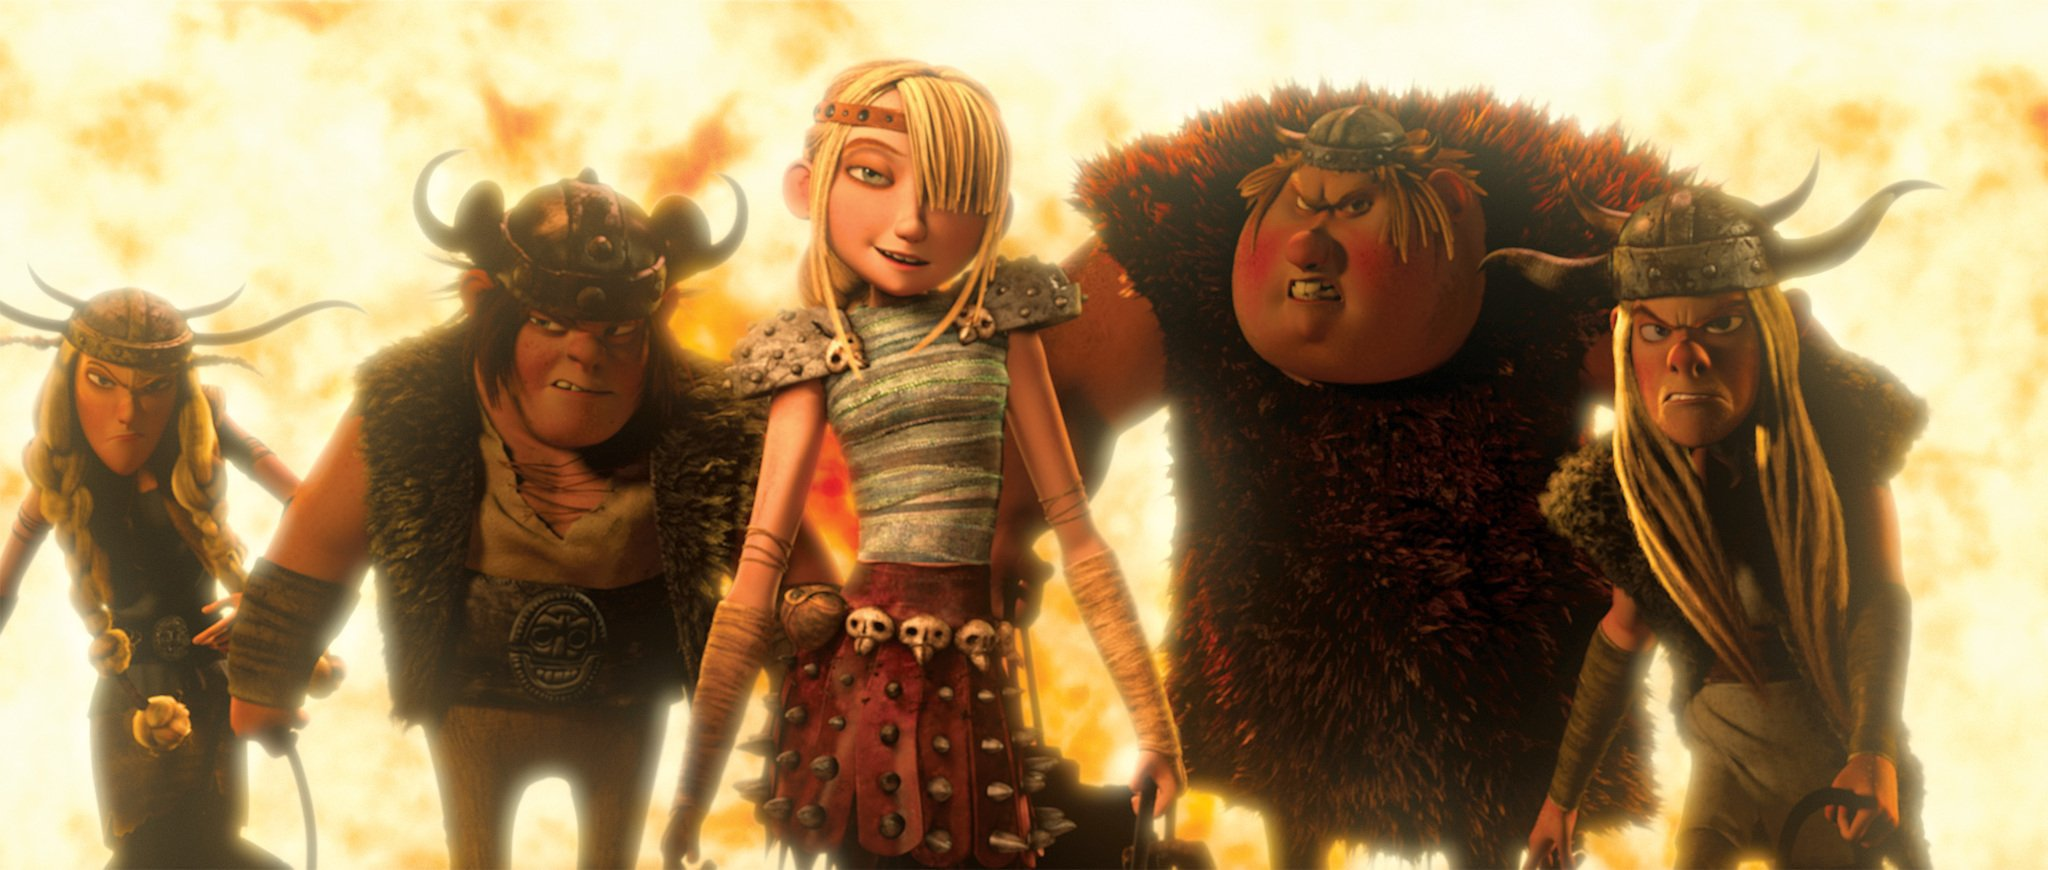 How To Train Your Dragon (2010) Full Movie English Subtitles